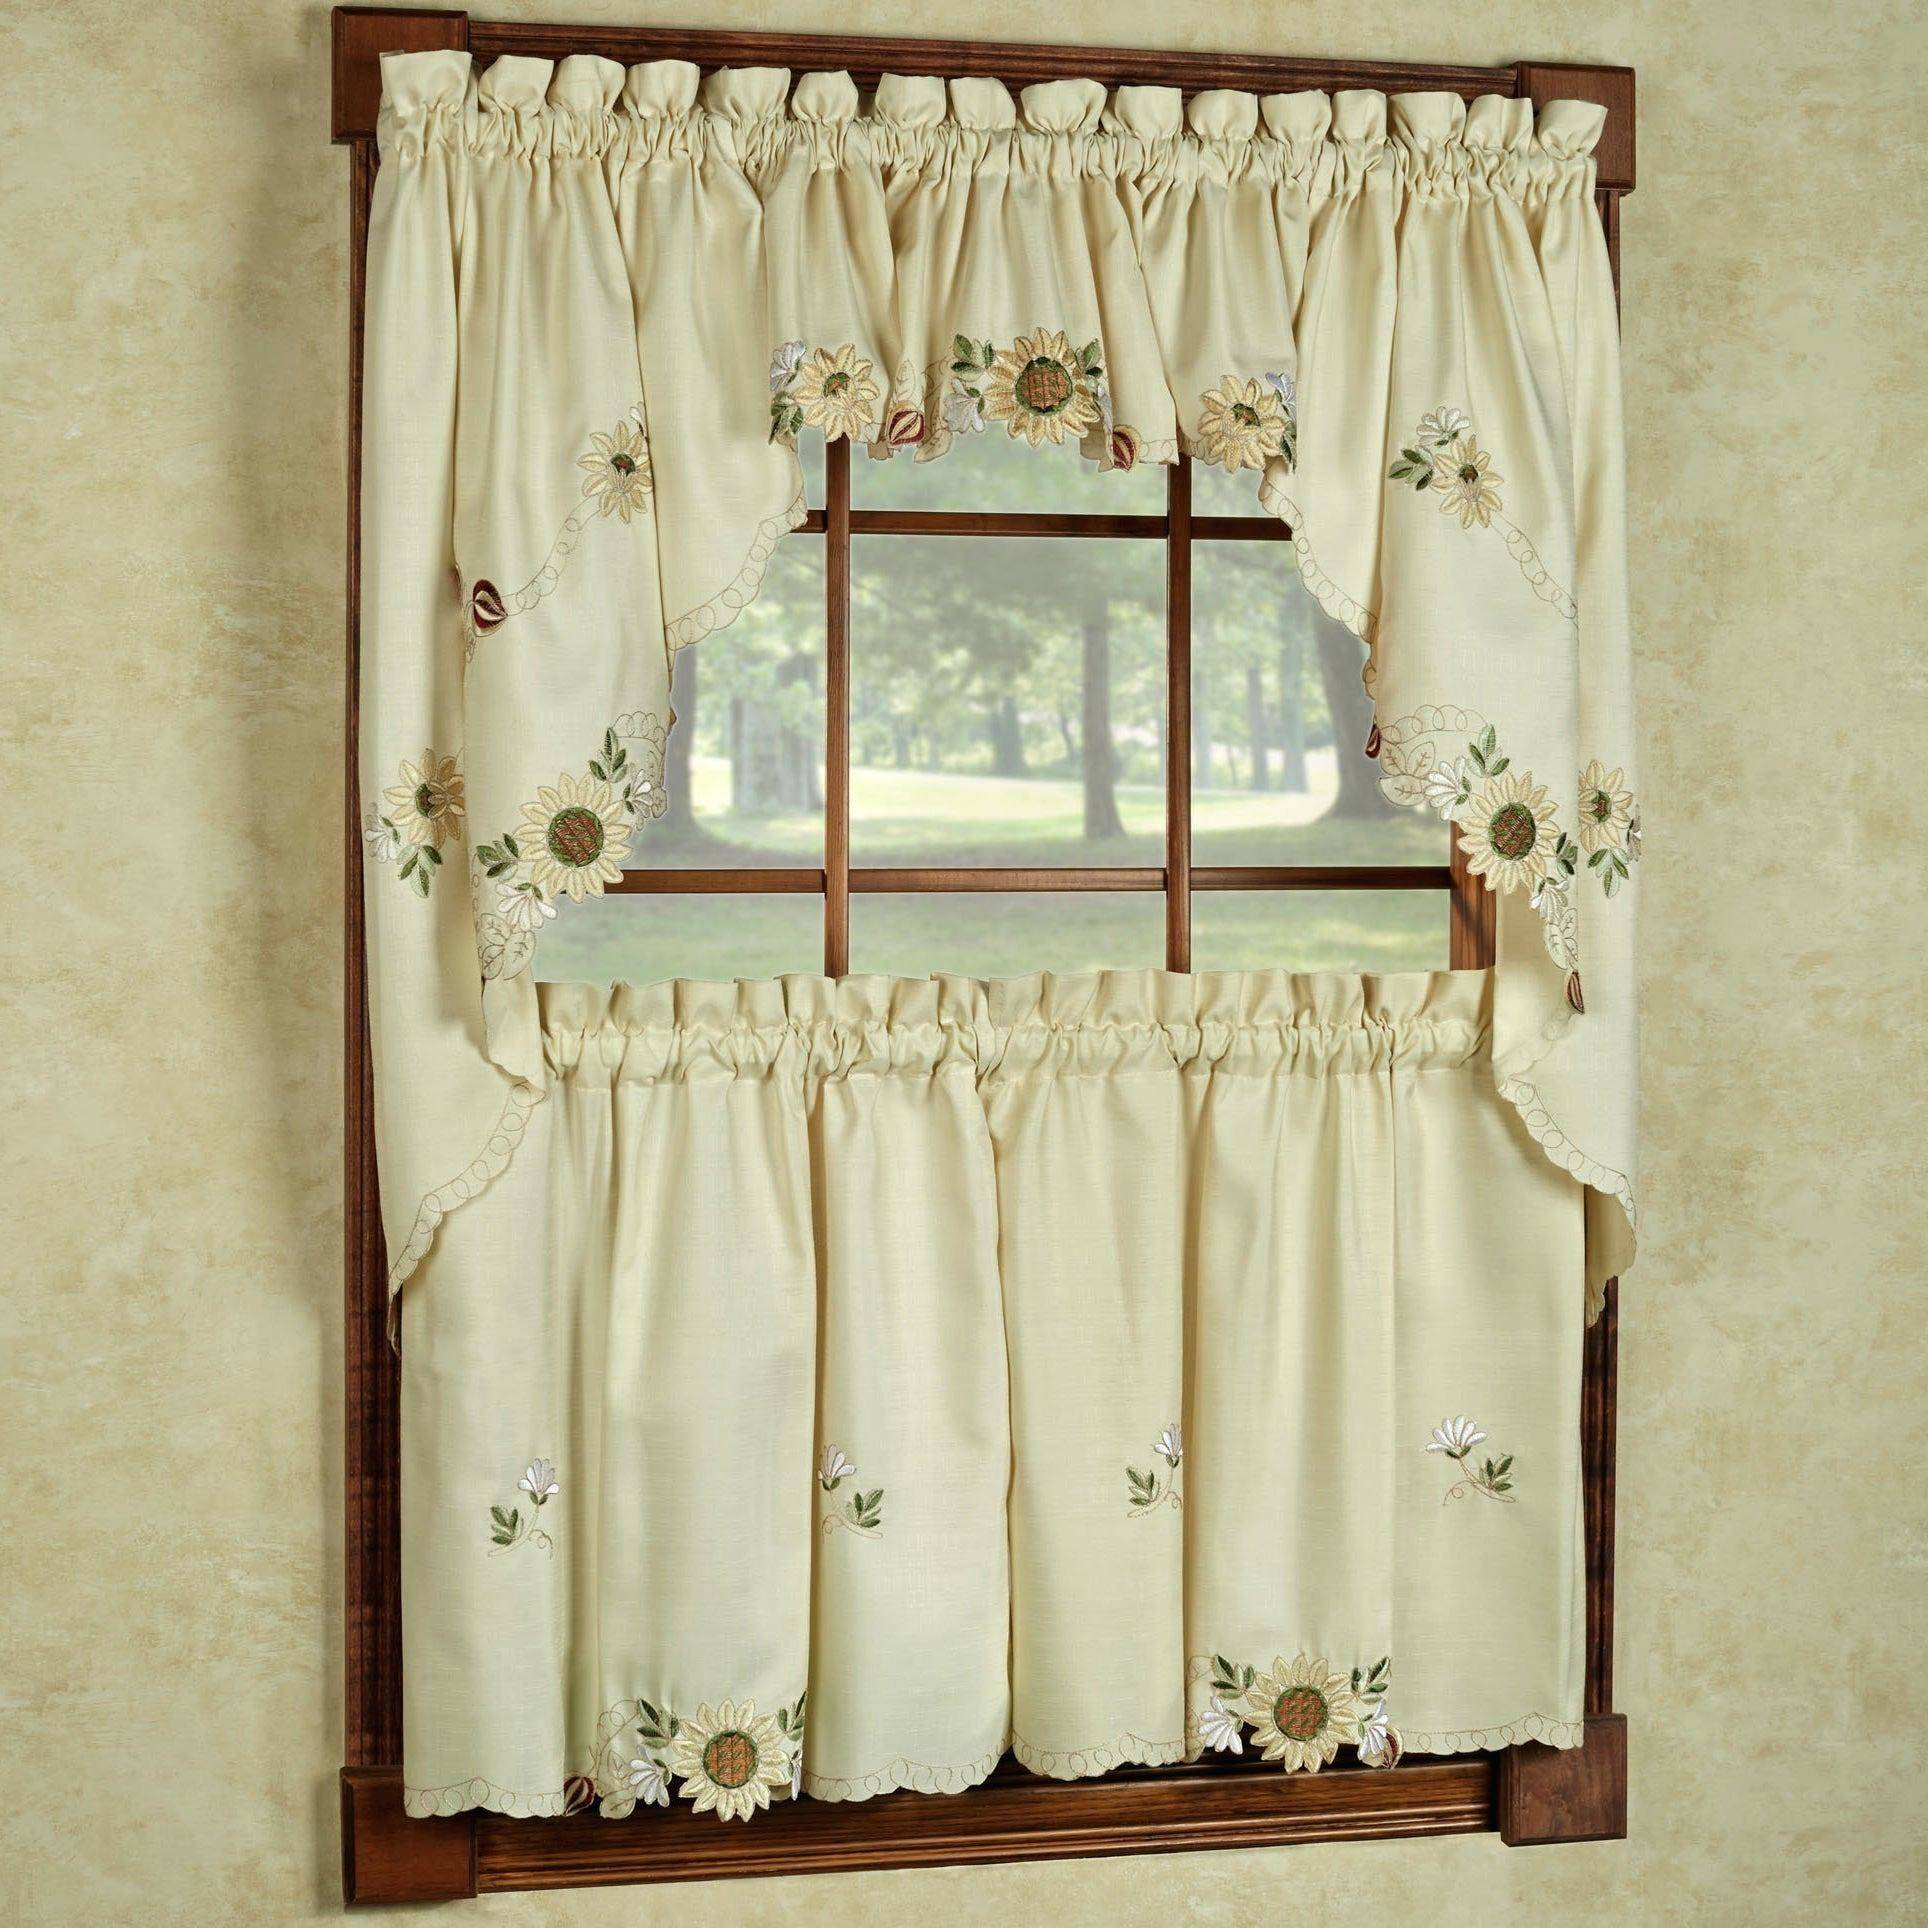 Popular Photo of Classic Kitchen Curtain Sets